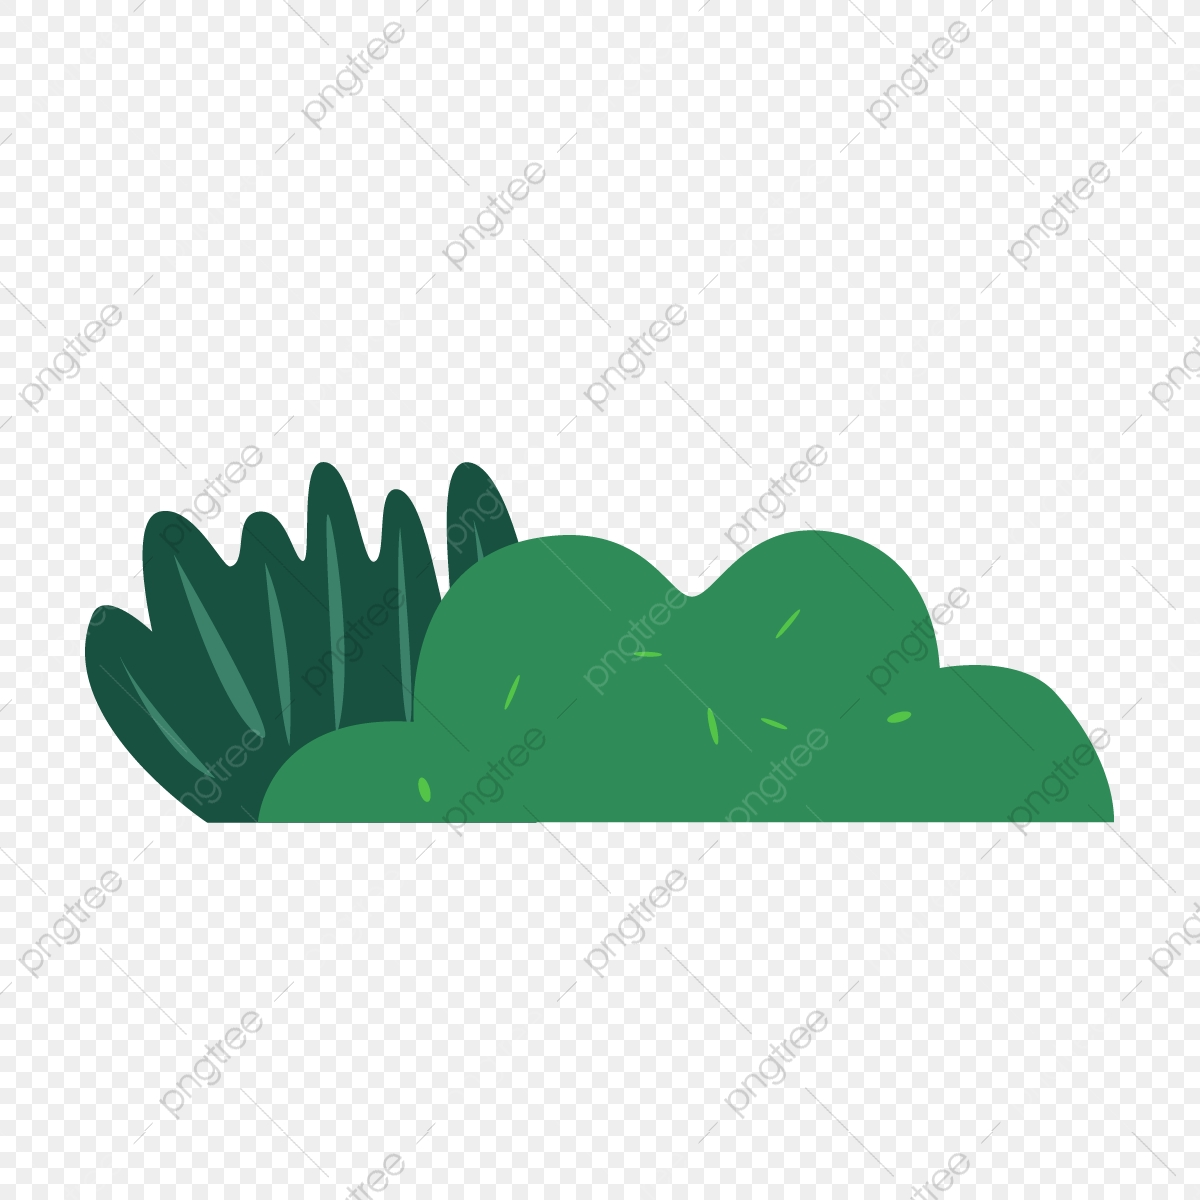 the cute grass illustration grass illustration cute png and vector with transparent background for free download https pngtree com freepng the cute grass illustration 4025026 html